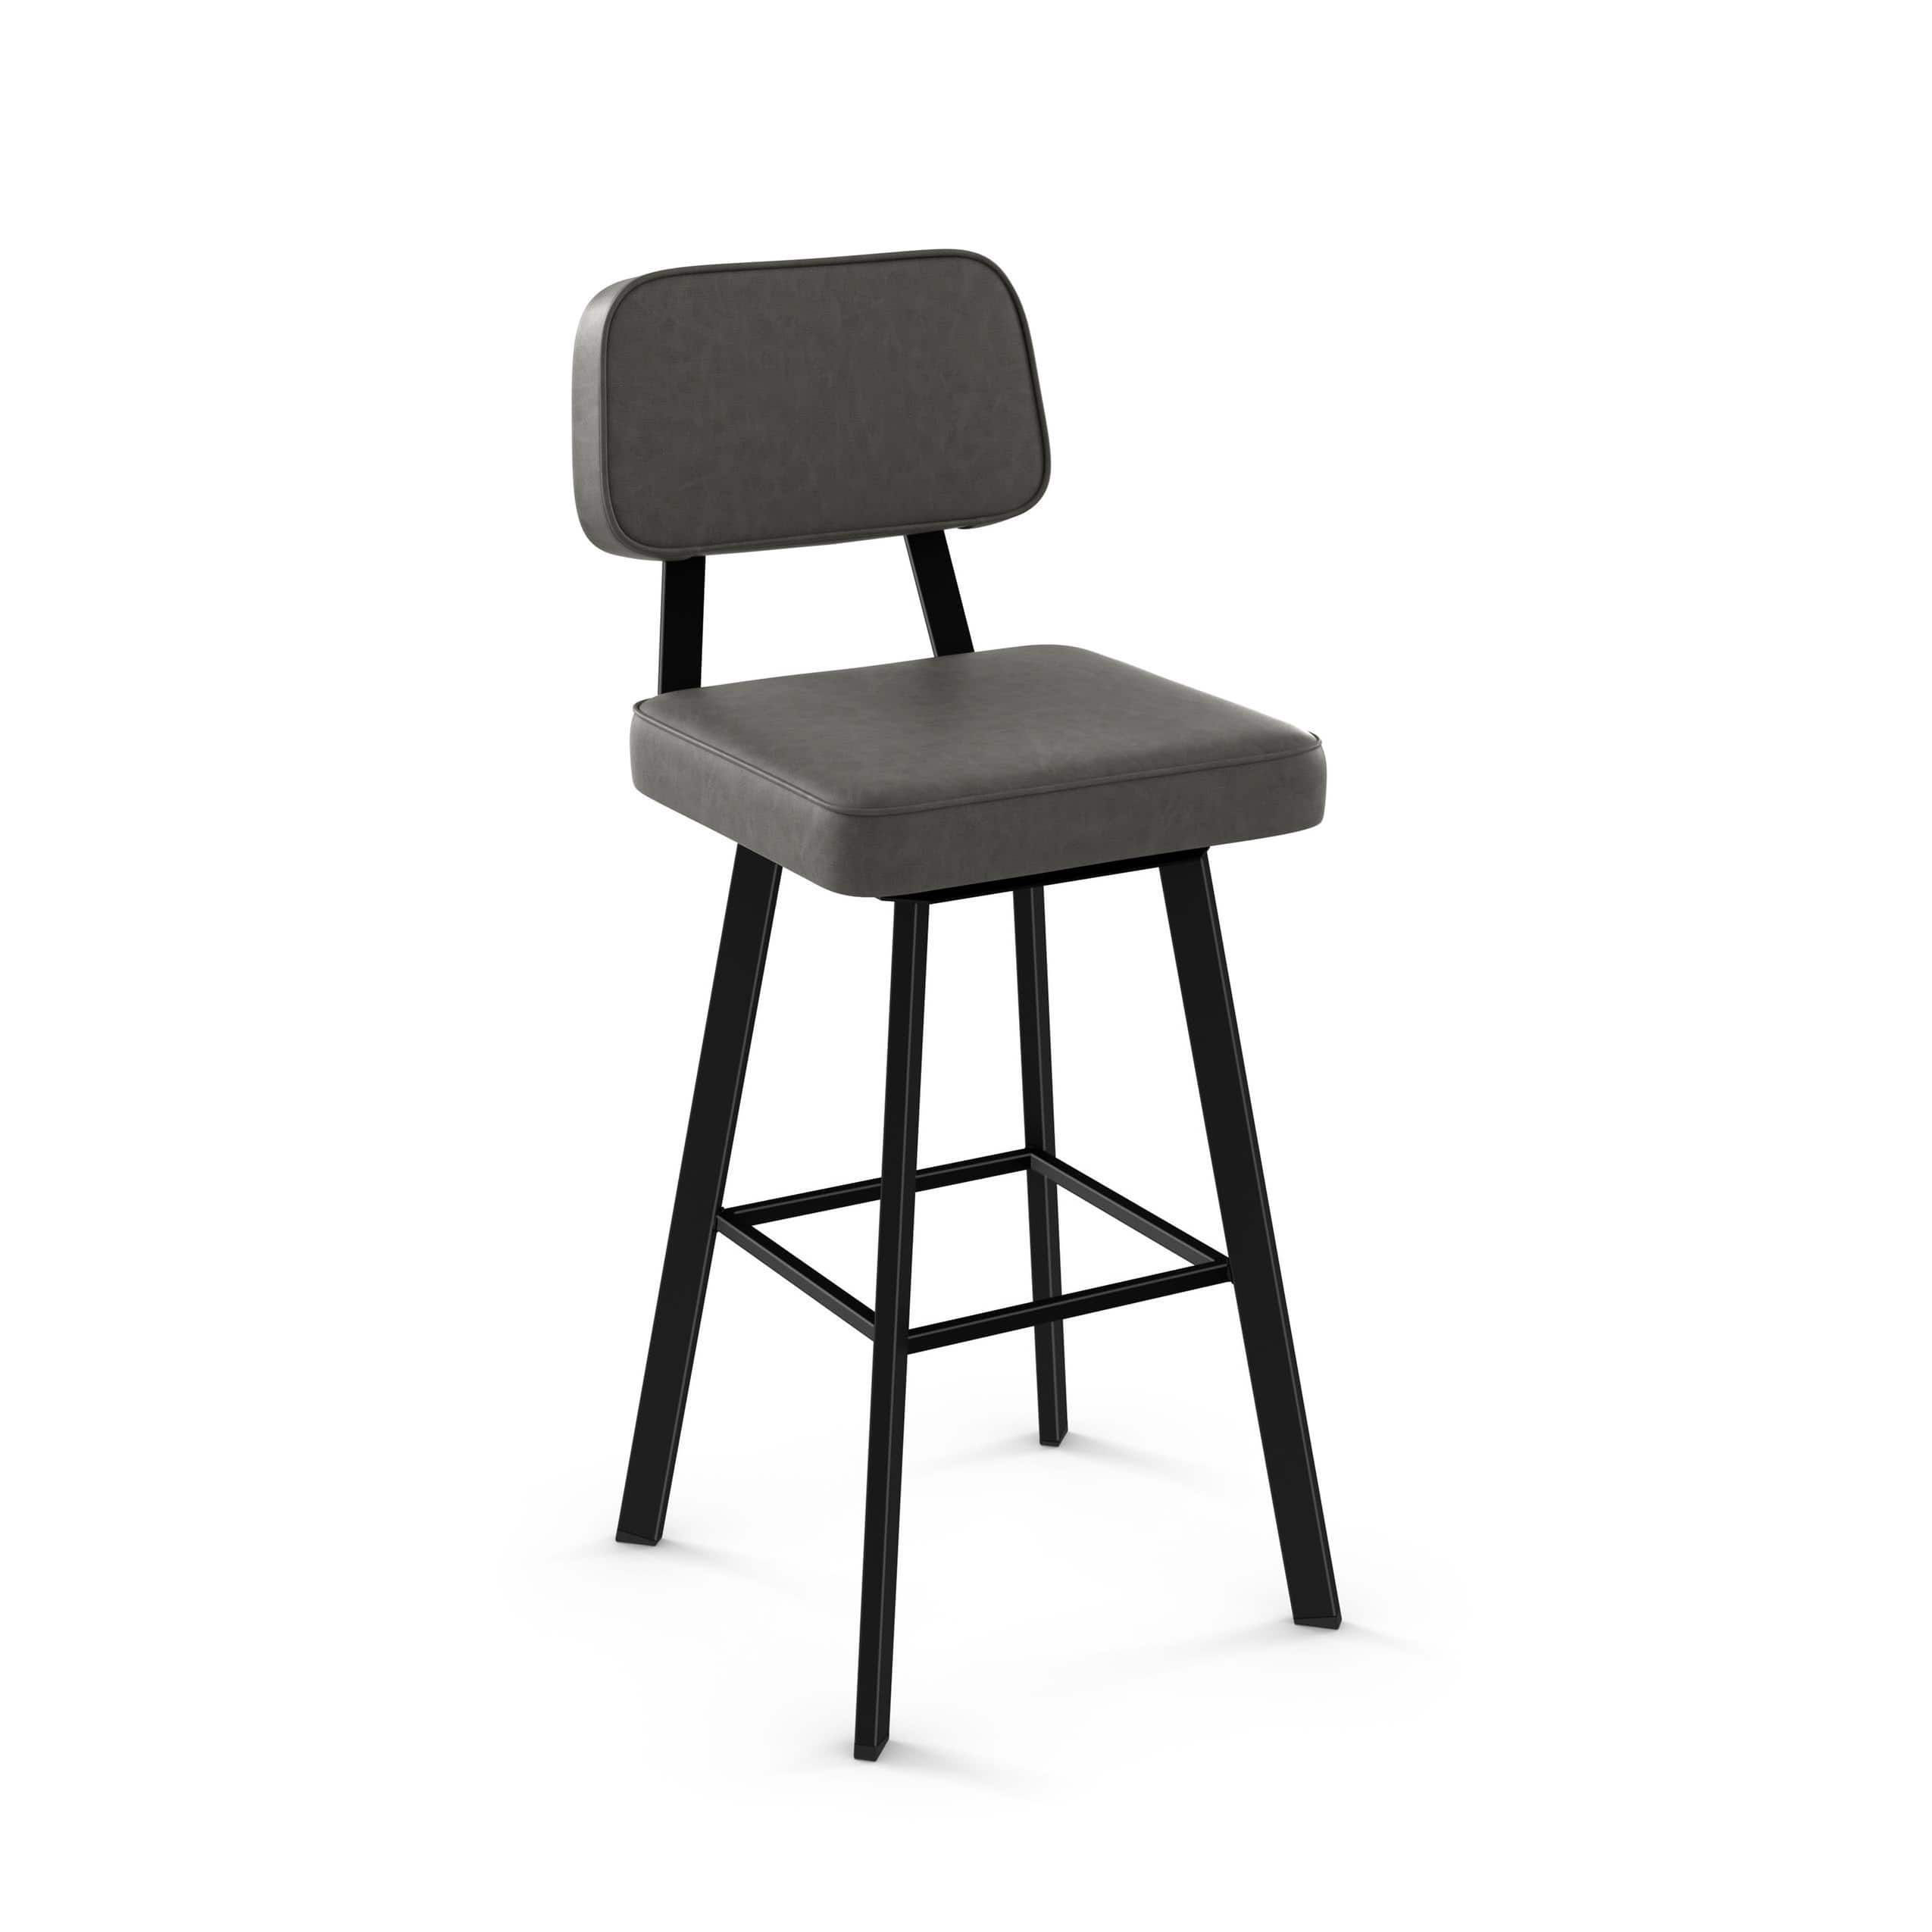 novogratz of overstock set stool nara product counter today dhp stools free shipping black home garden